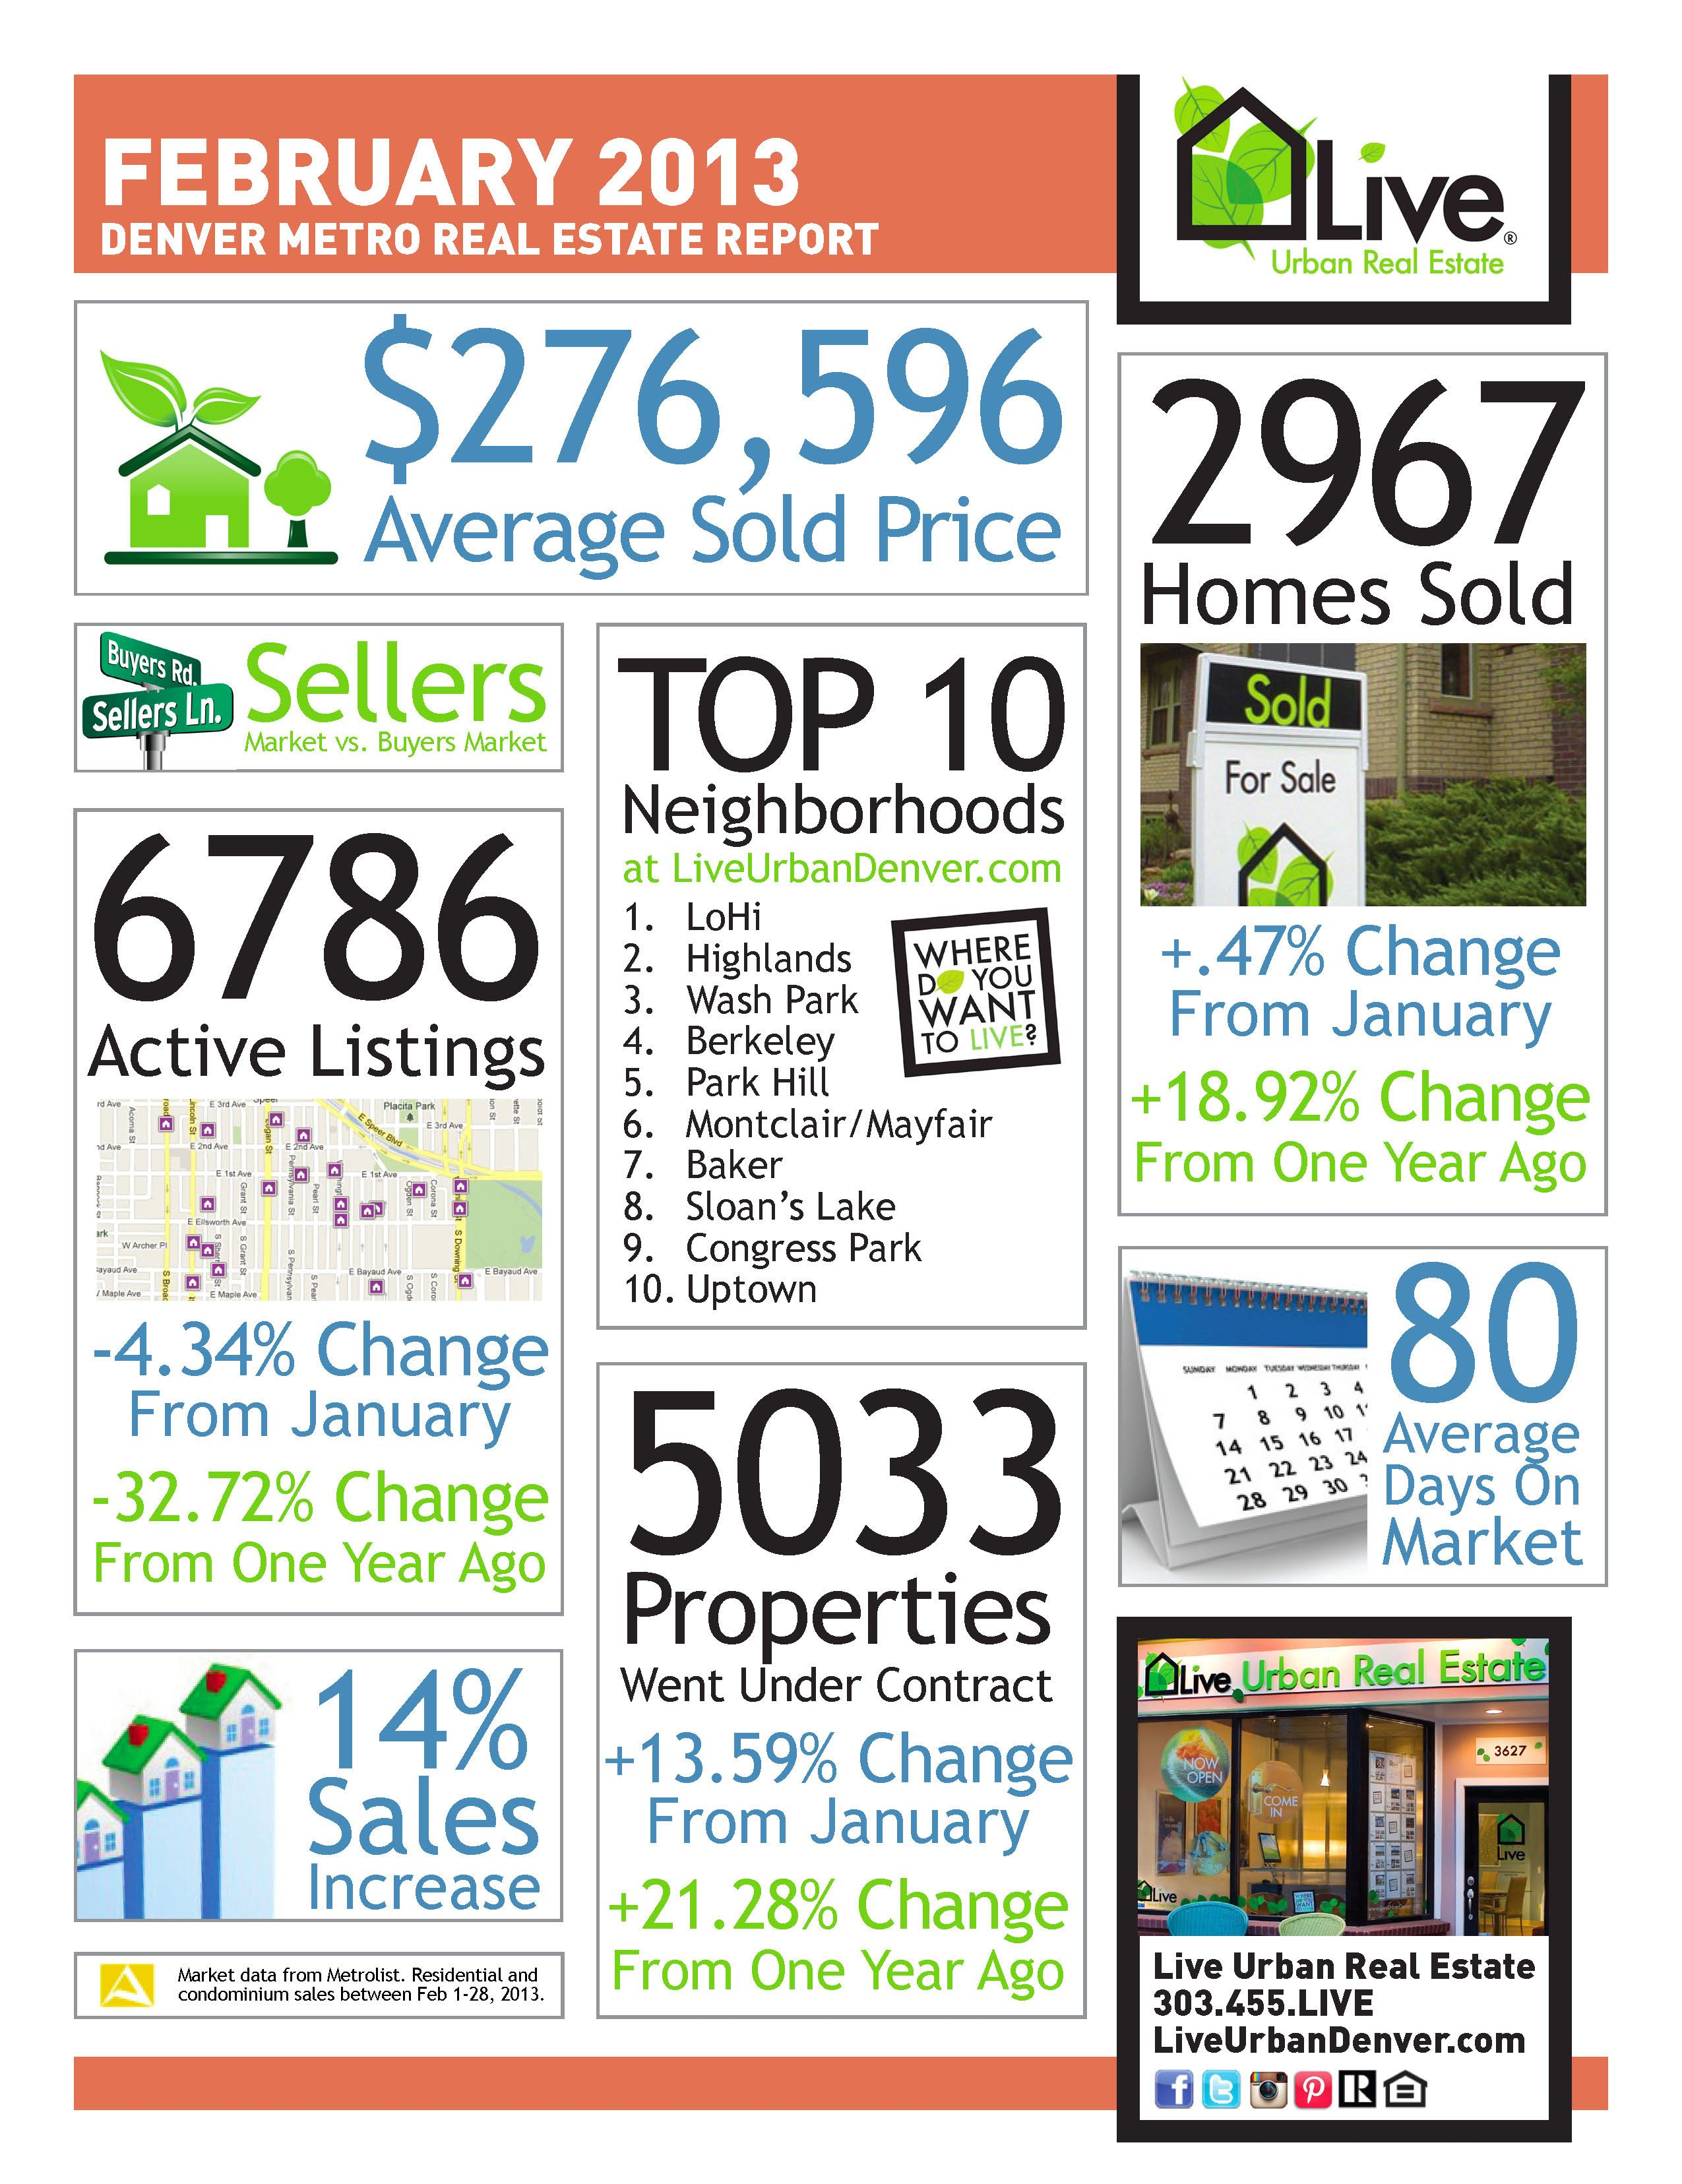 Denver S Real Estate Market Continues To Show Strength Real Estate Postcards Denver Real Estate Real Estate Marketing